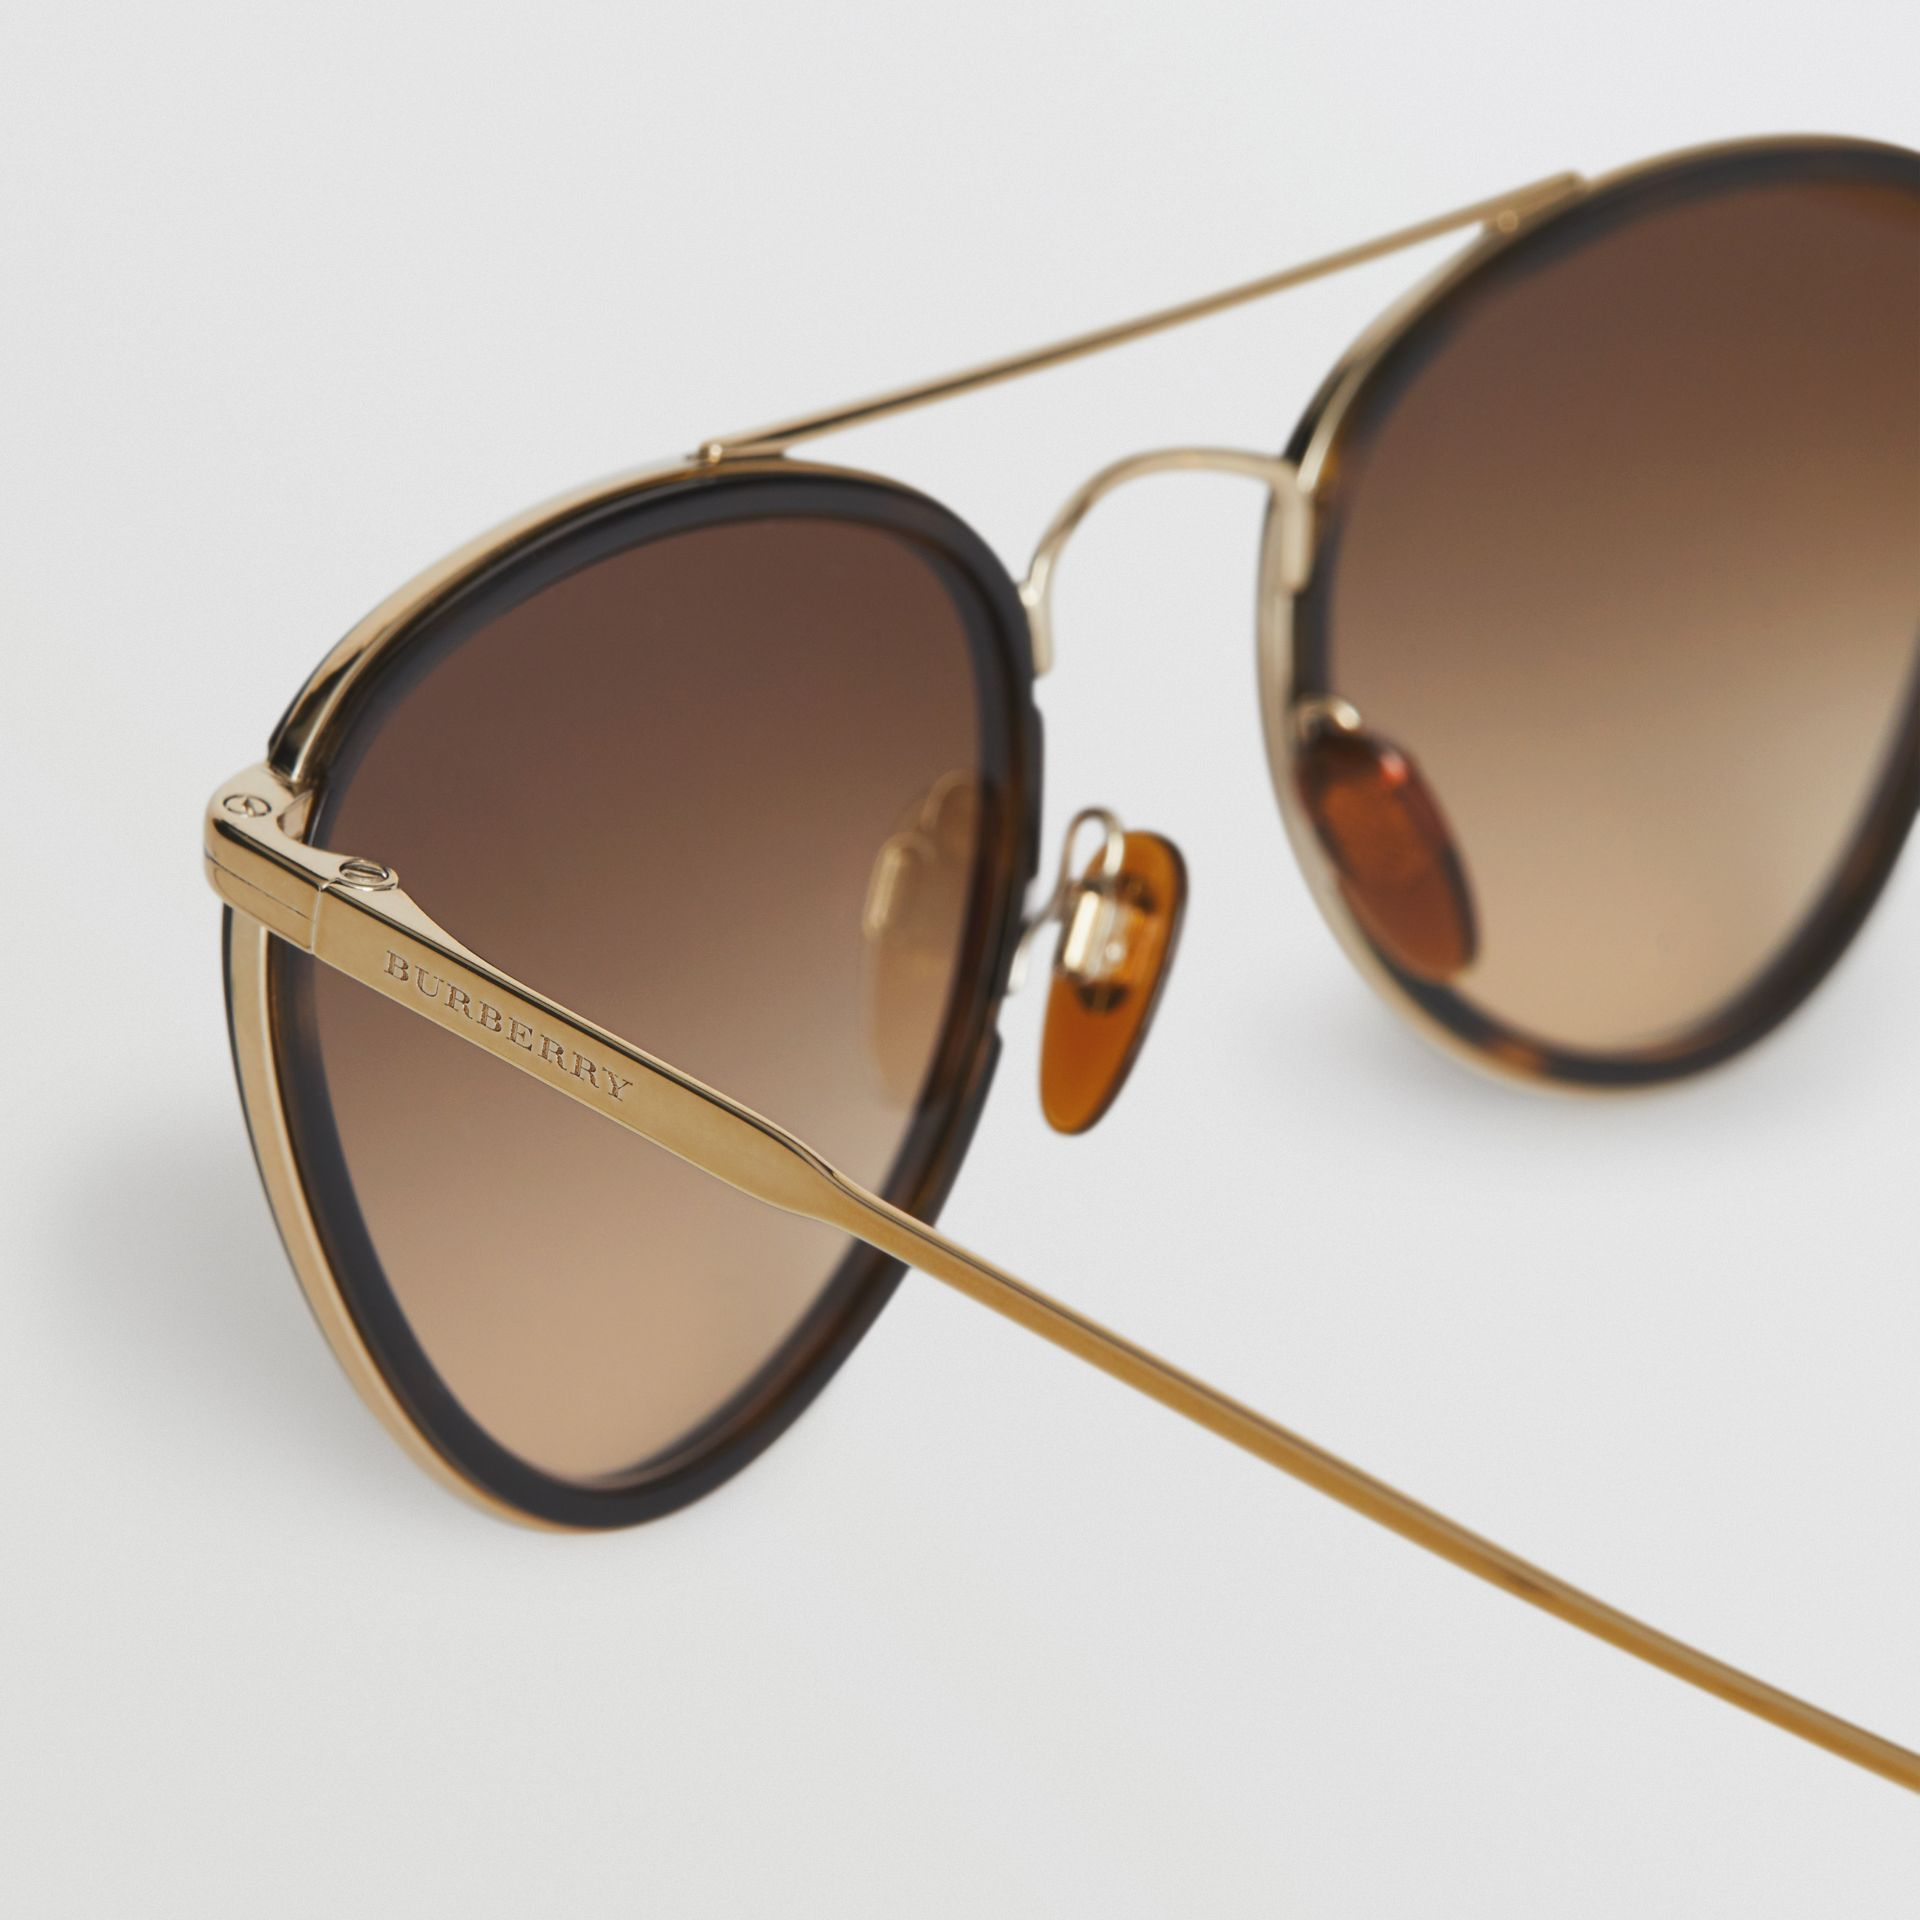 Pilot Sunglasses in Tortoise Shell - Women | Burberry - gallery image 1